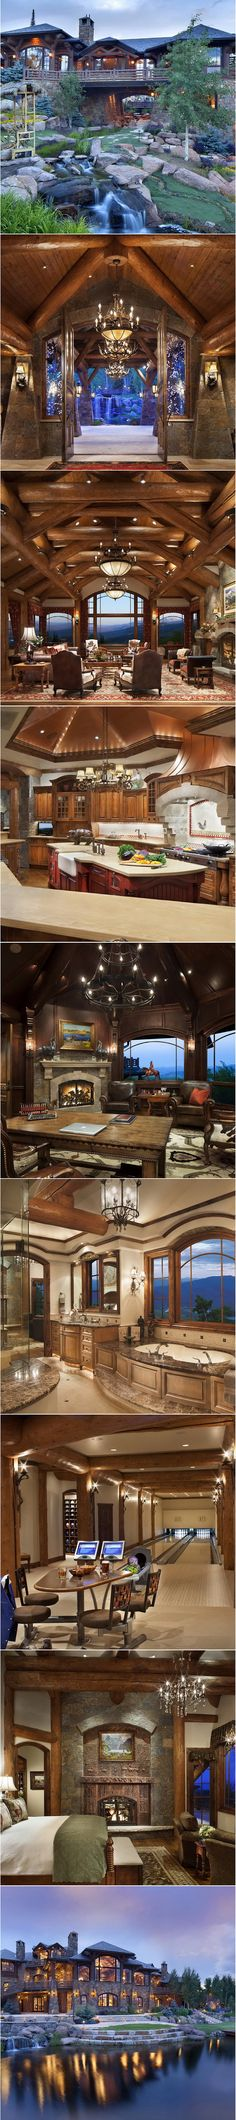 #Aspen Grove #Ranch 2010 GCR 14N Kremmling, #Colorado 80459 United States $28,500,000 This stunning 24,000 sq. ft. #home rests privately on 350 acres within the 18,000 acre shared ranch community of Grand River Ranch near Kremmling, Colorado.